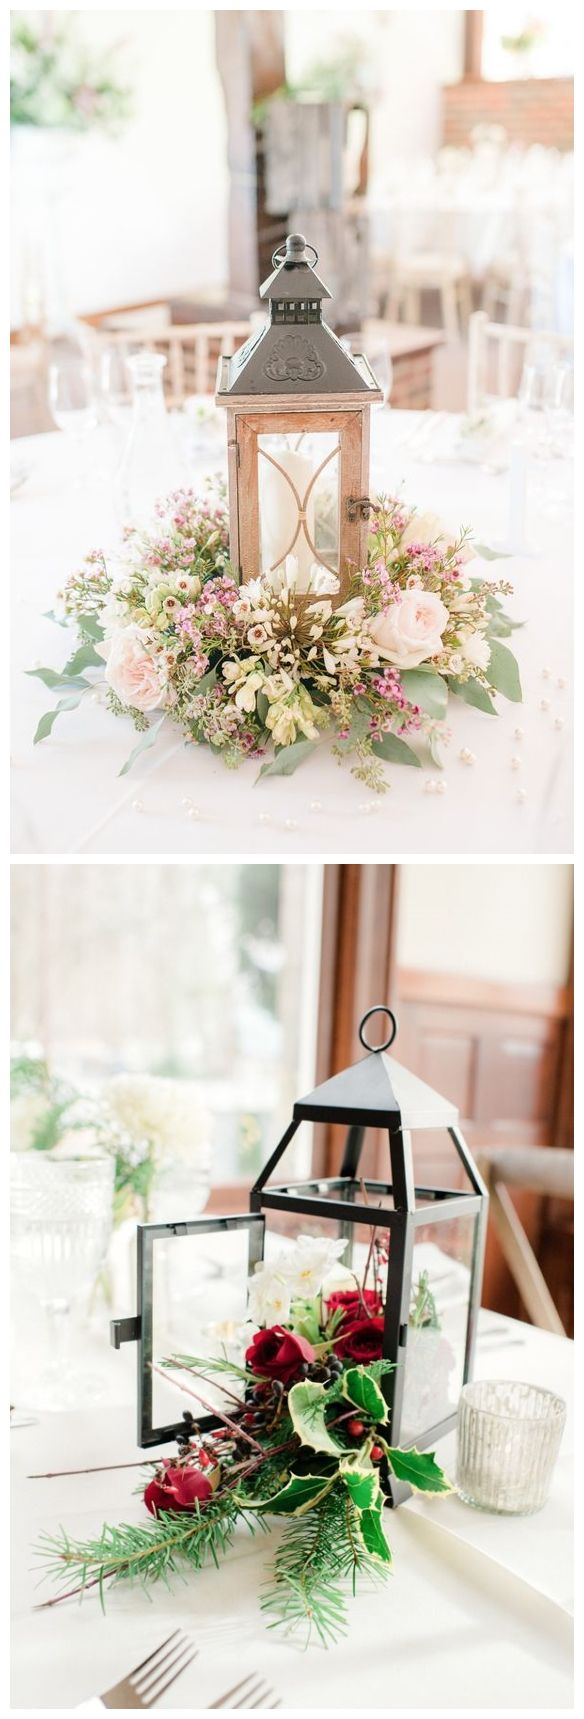 60 Insanely Wedding Centerpiece Ideas You\'ll Love | Pinterest ...